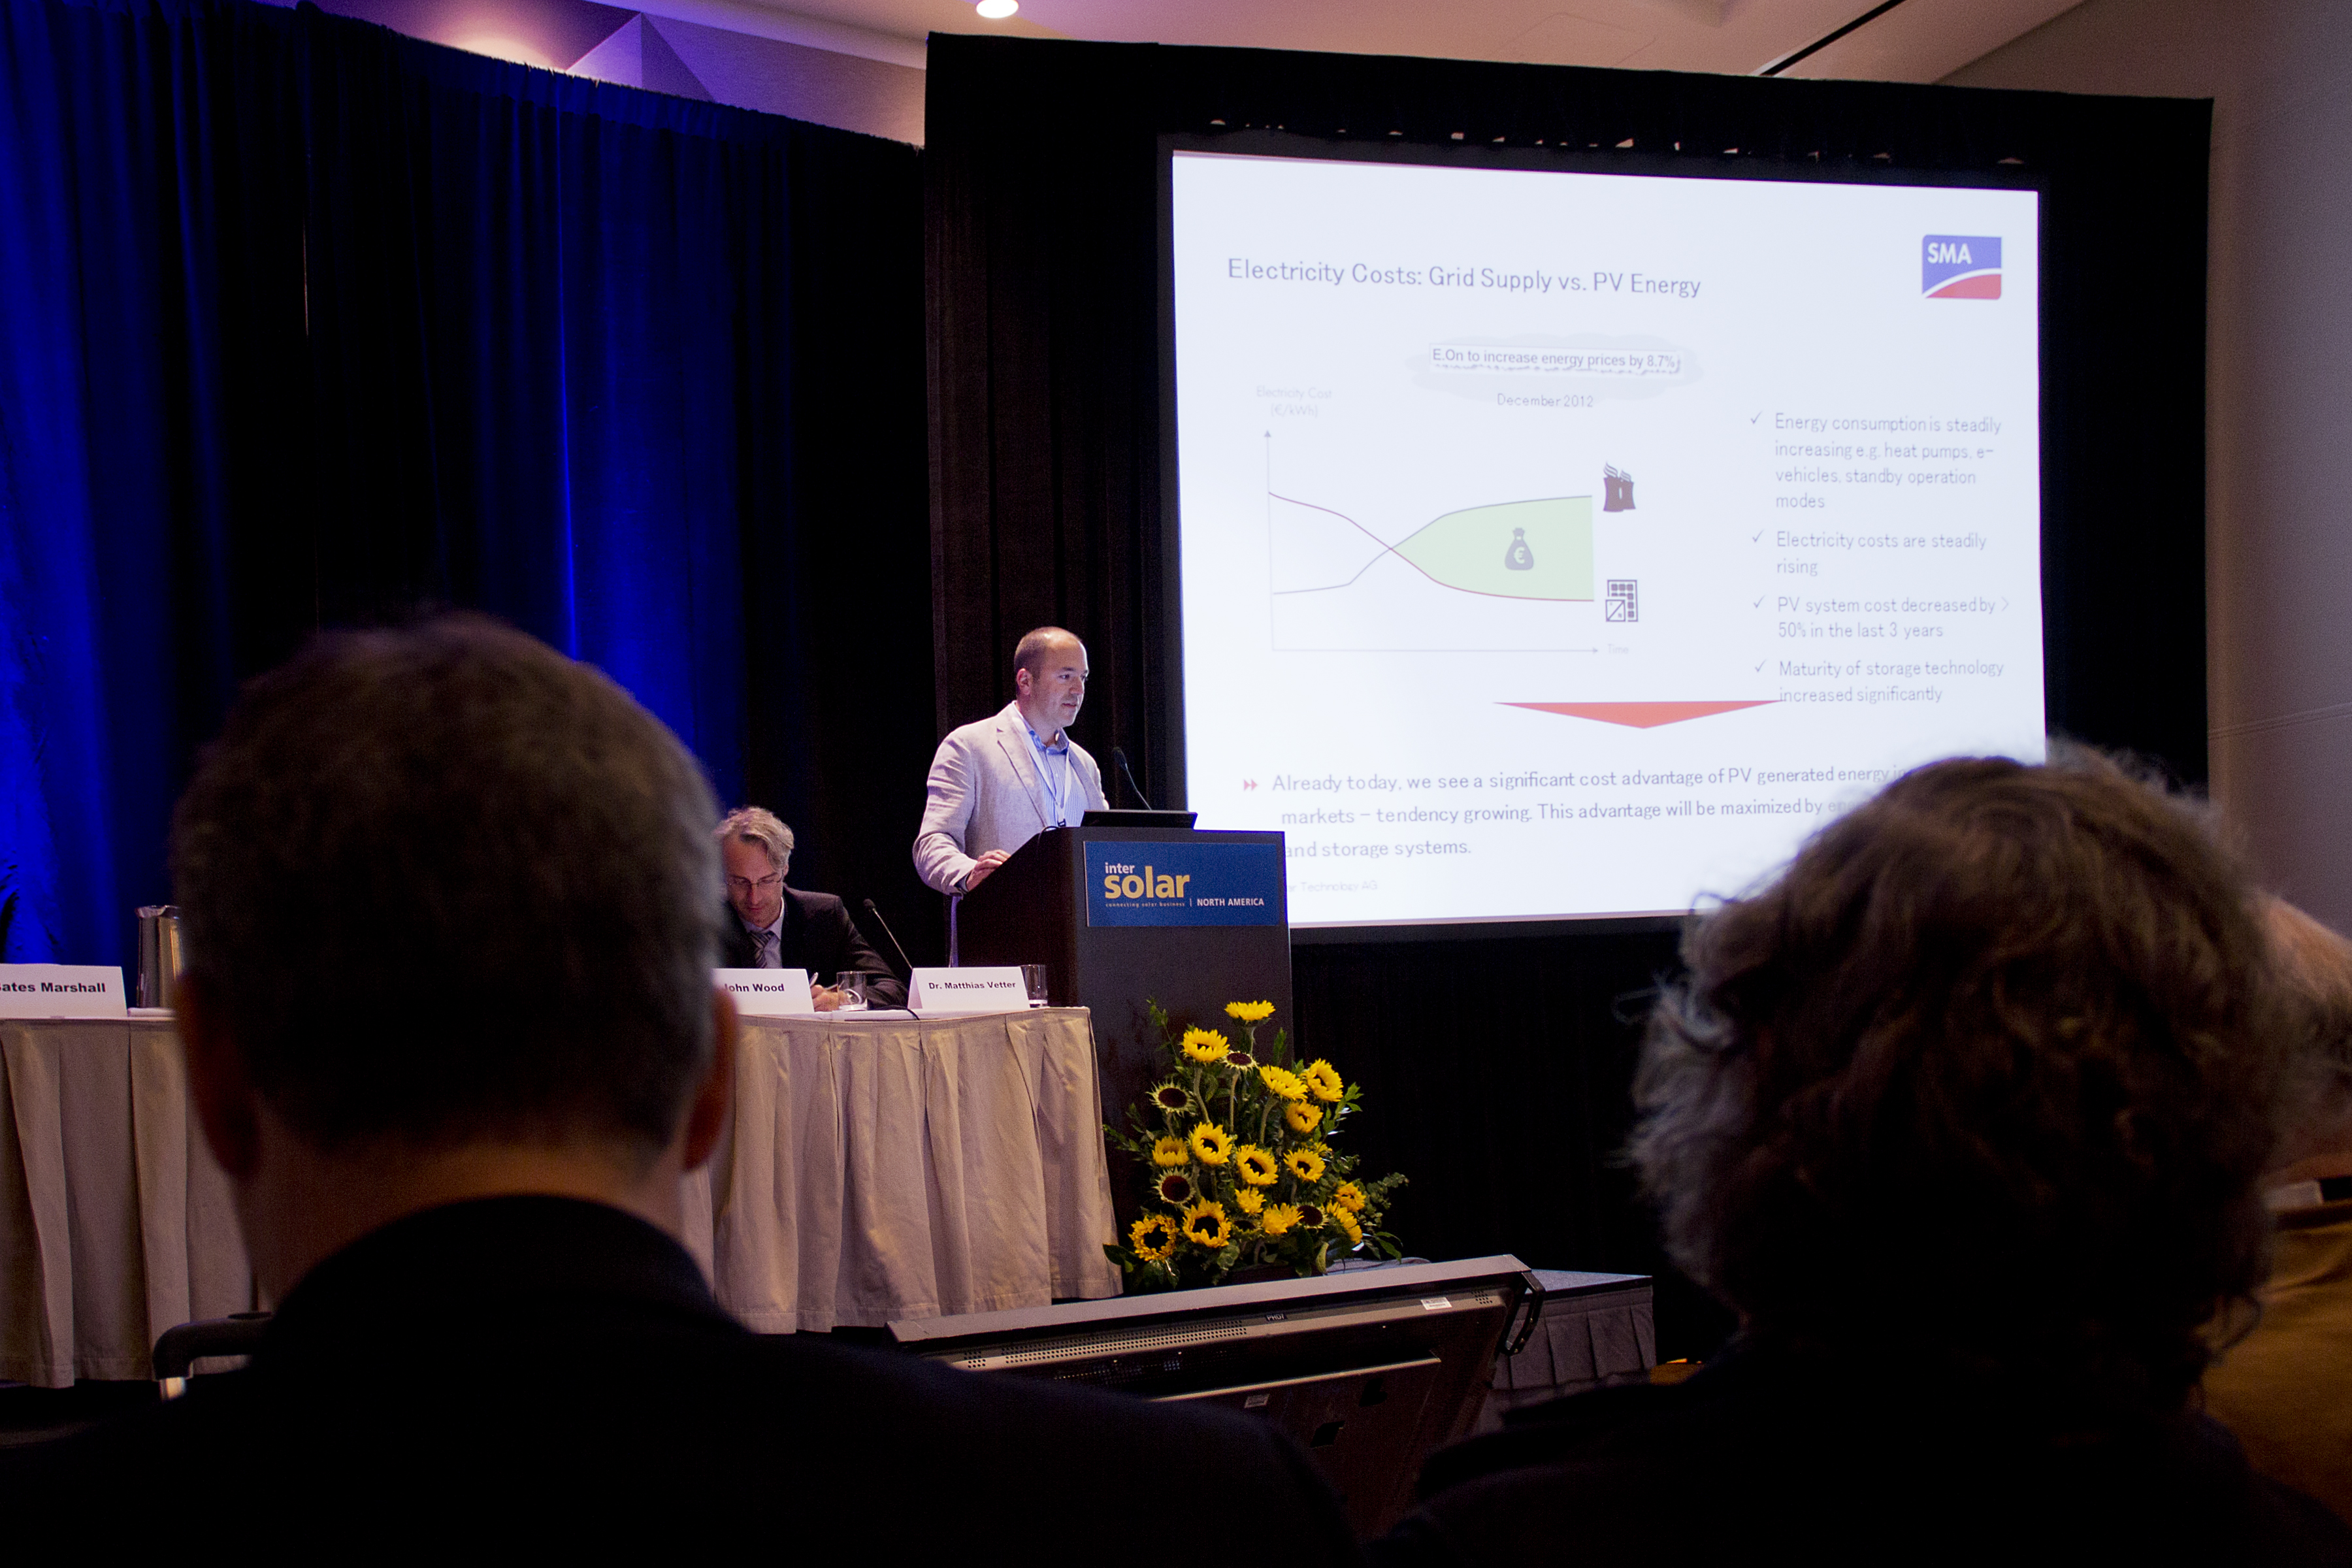 Bates Marshall speaking about storage technology at Intersolar North America.